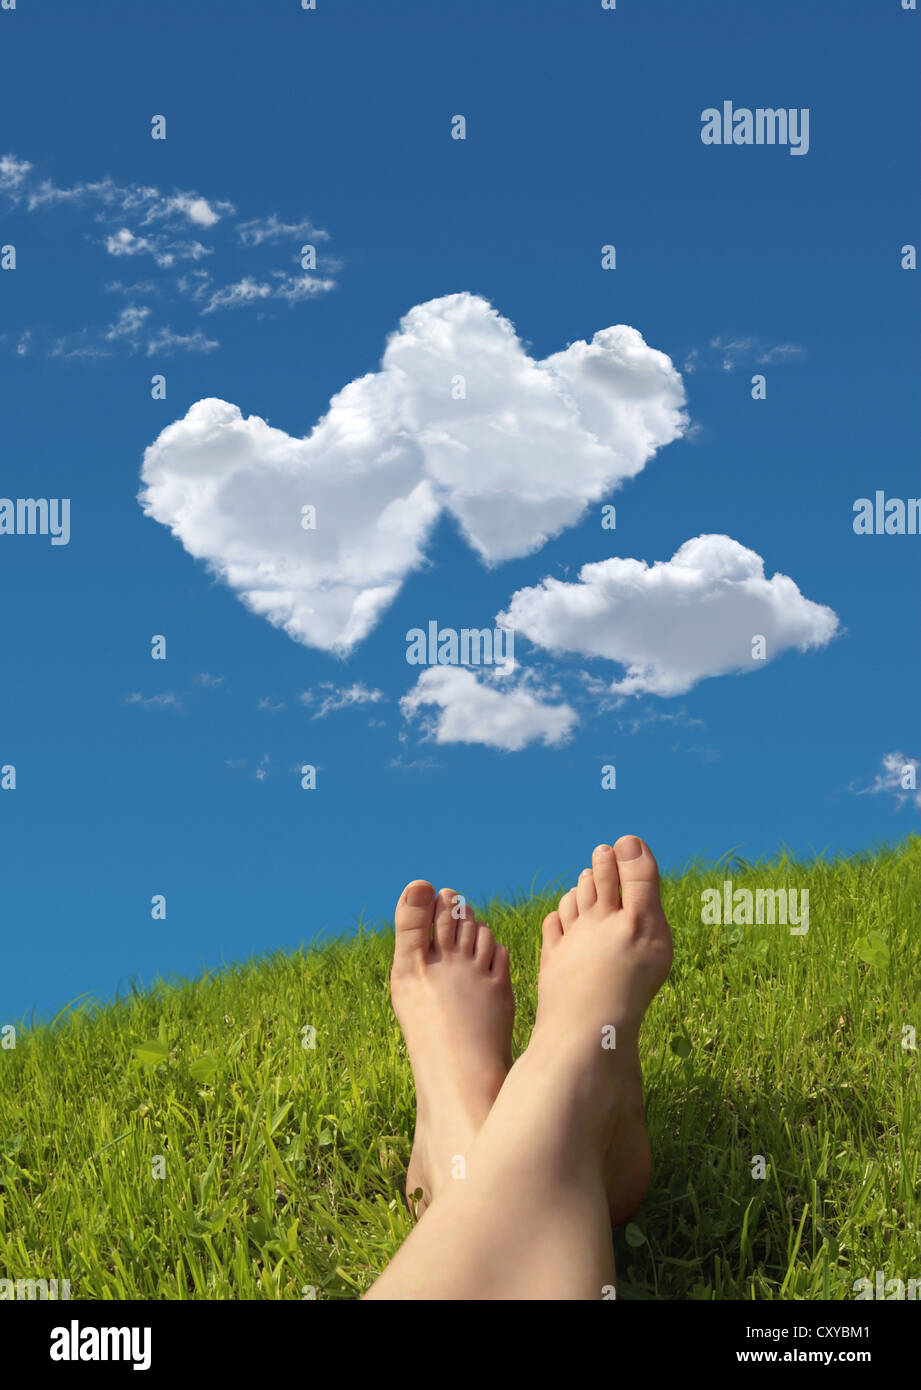 Woman lying on a meadow, detail of feet with a heart-shaped cloud formation in the sky - Stock Image